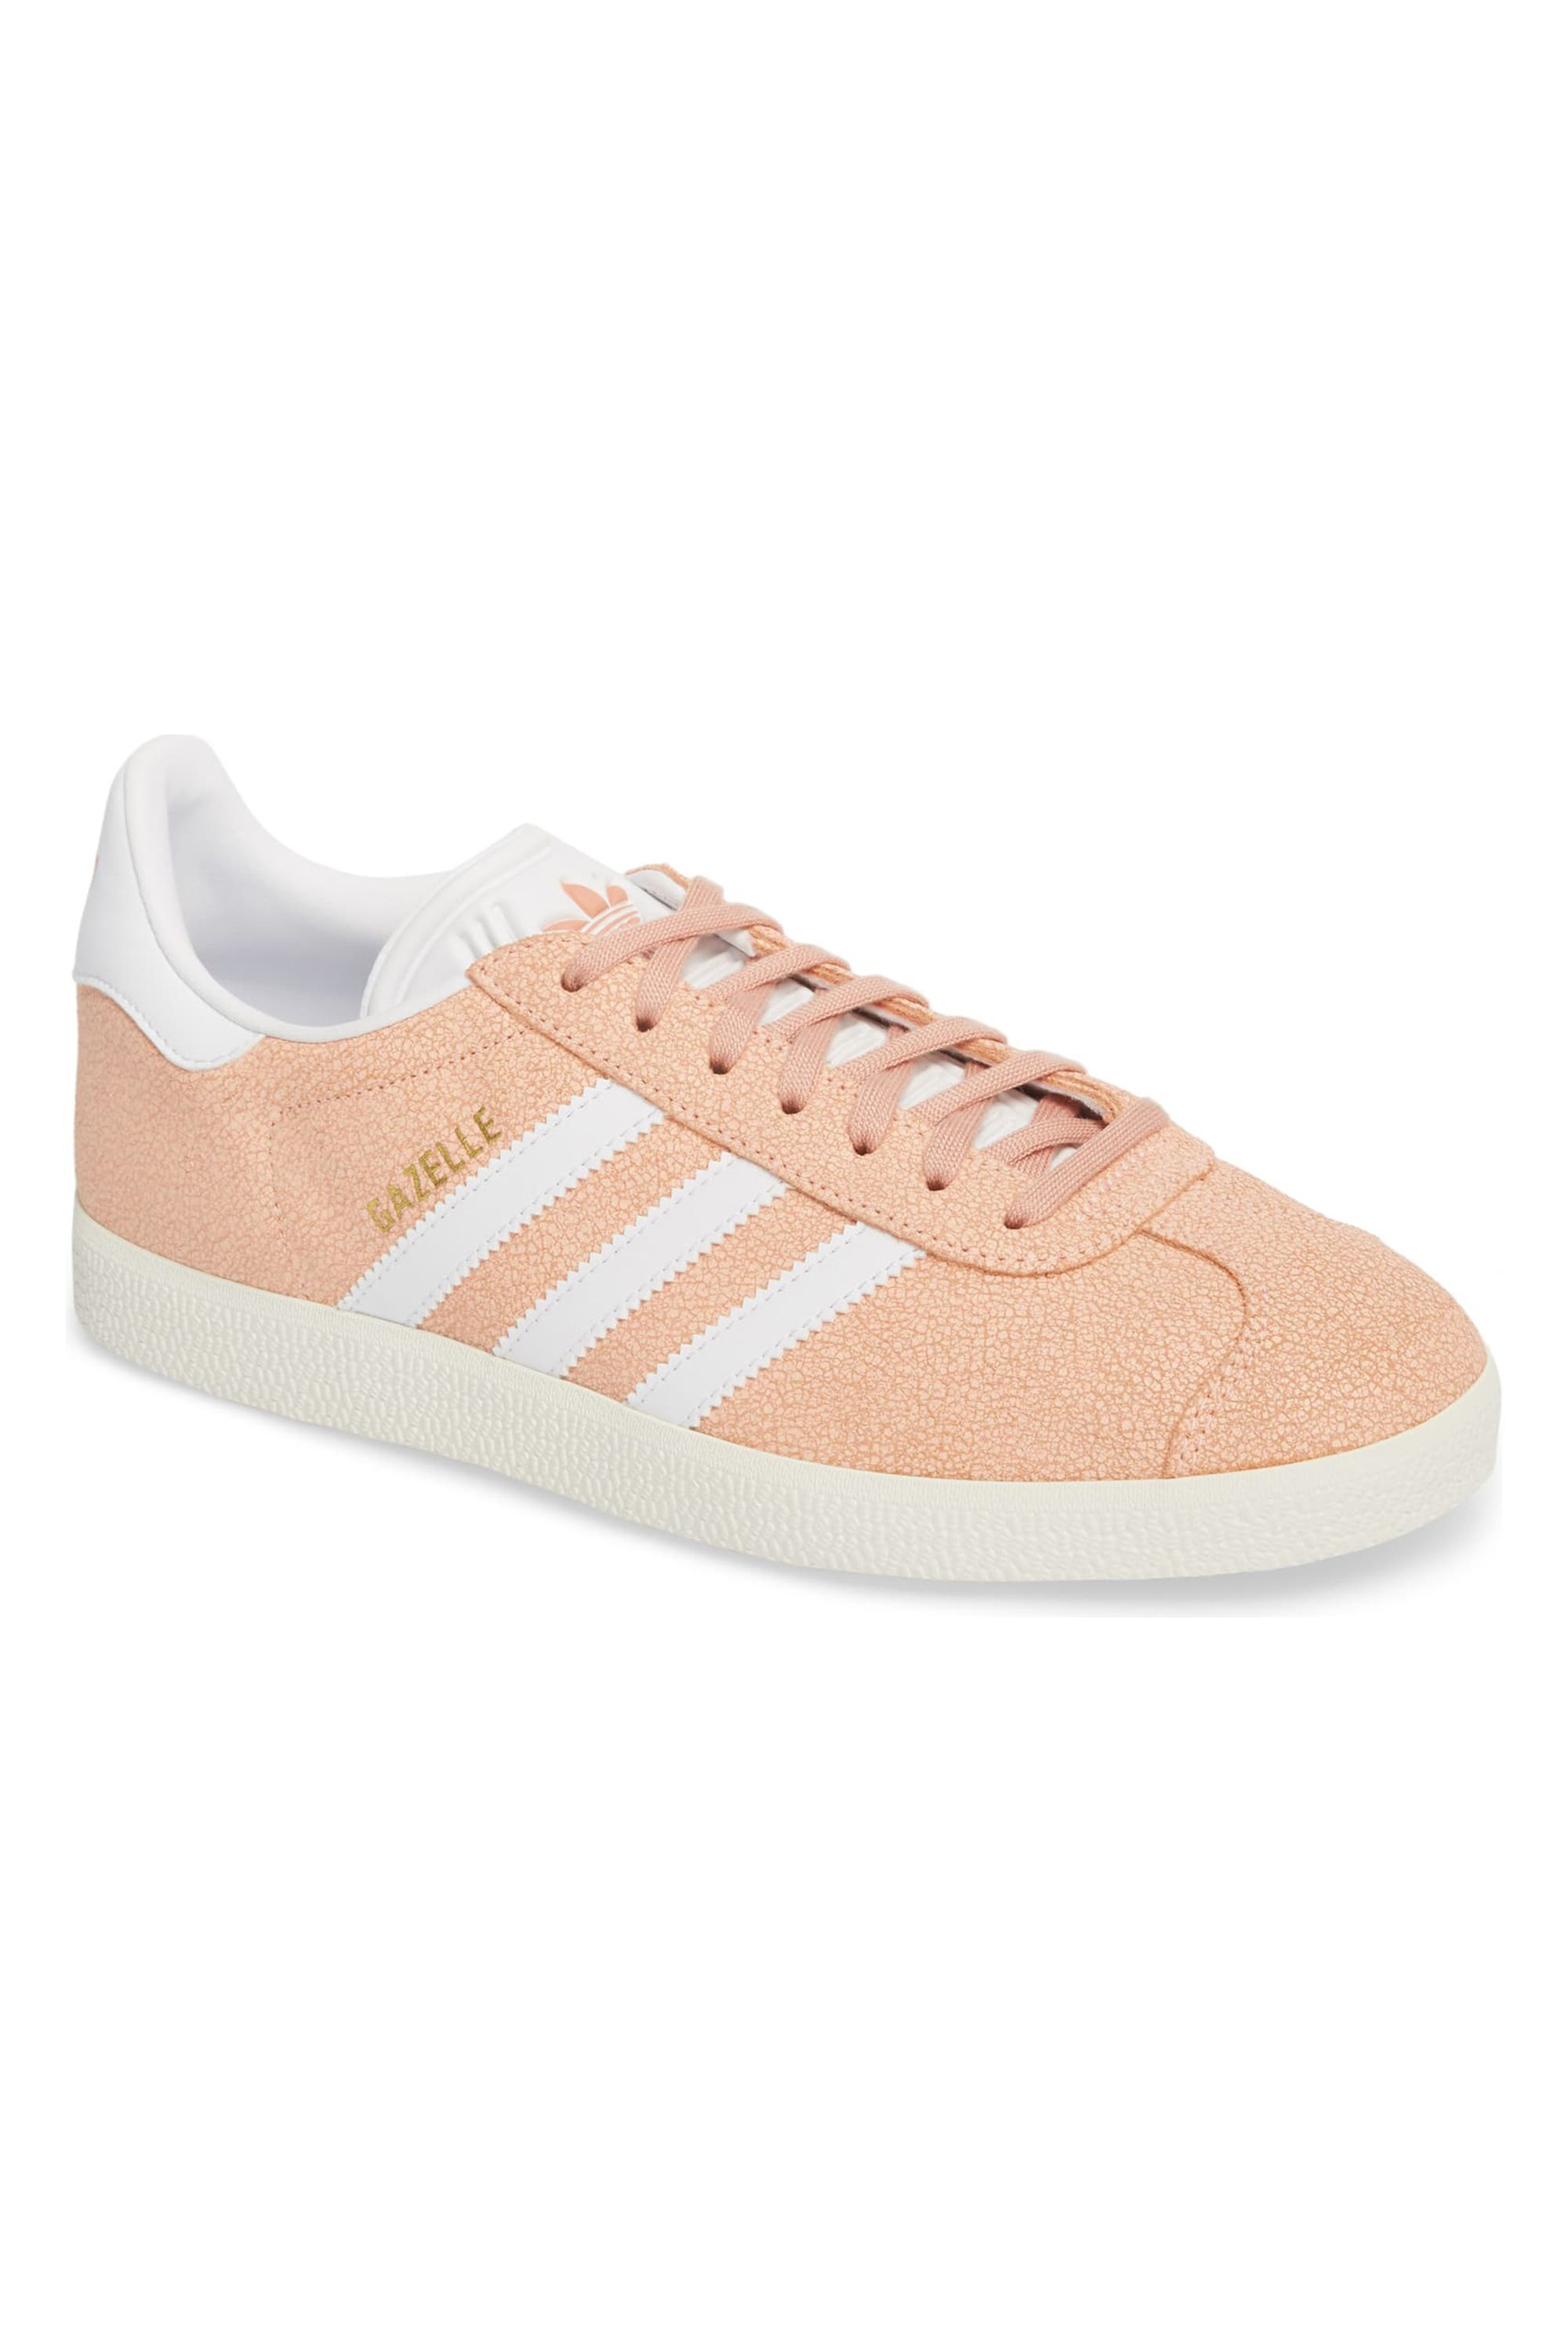 Gazelle Sneaker Adidas, $60.30 nordstrom.com SHOP NOW